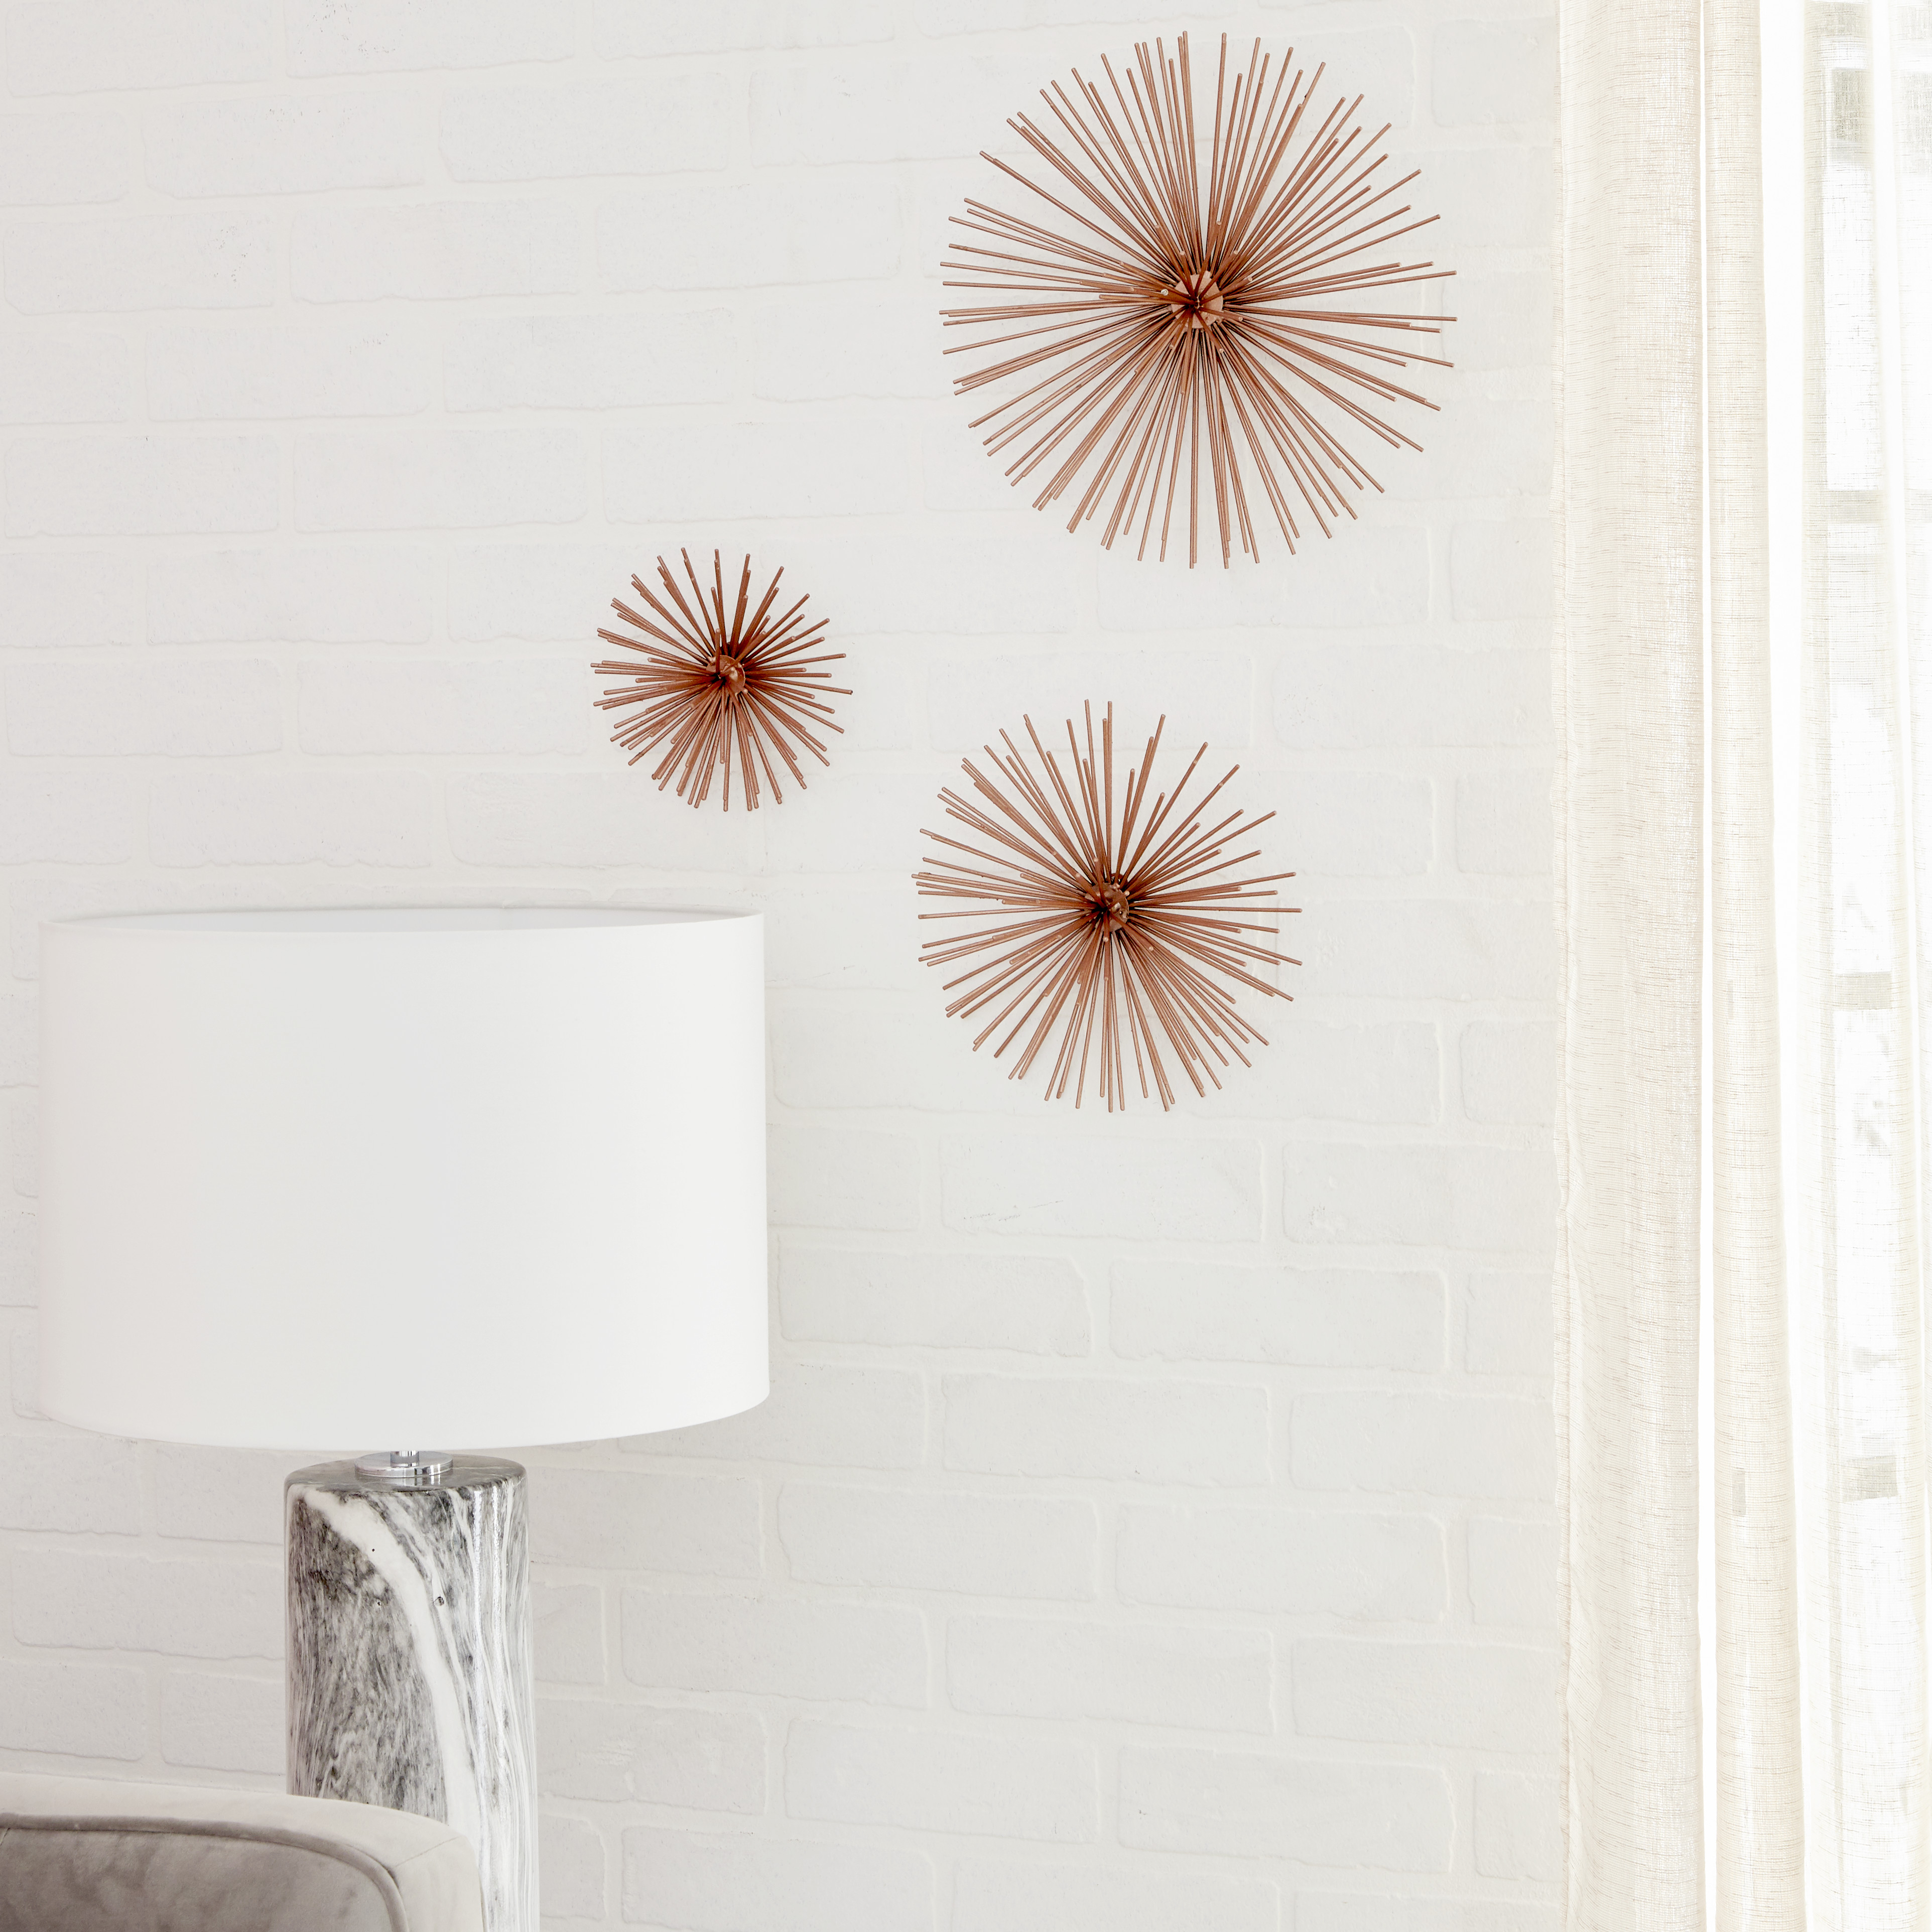 "Cosmoliving Contemporary Style 3D Round Copper Metal Starburst Wall Decor  Sculptures | Set Of 3: 6"", 9"", 12"" throughout Metal Wall Decor by Cosmoliving (Image 4 of 30)"